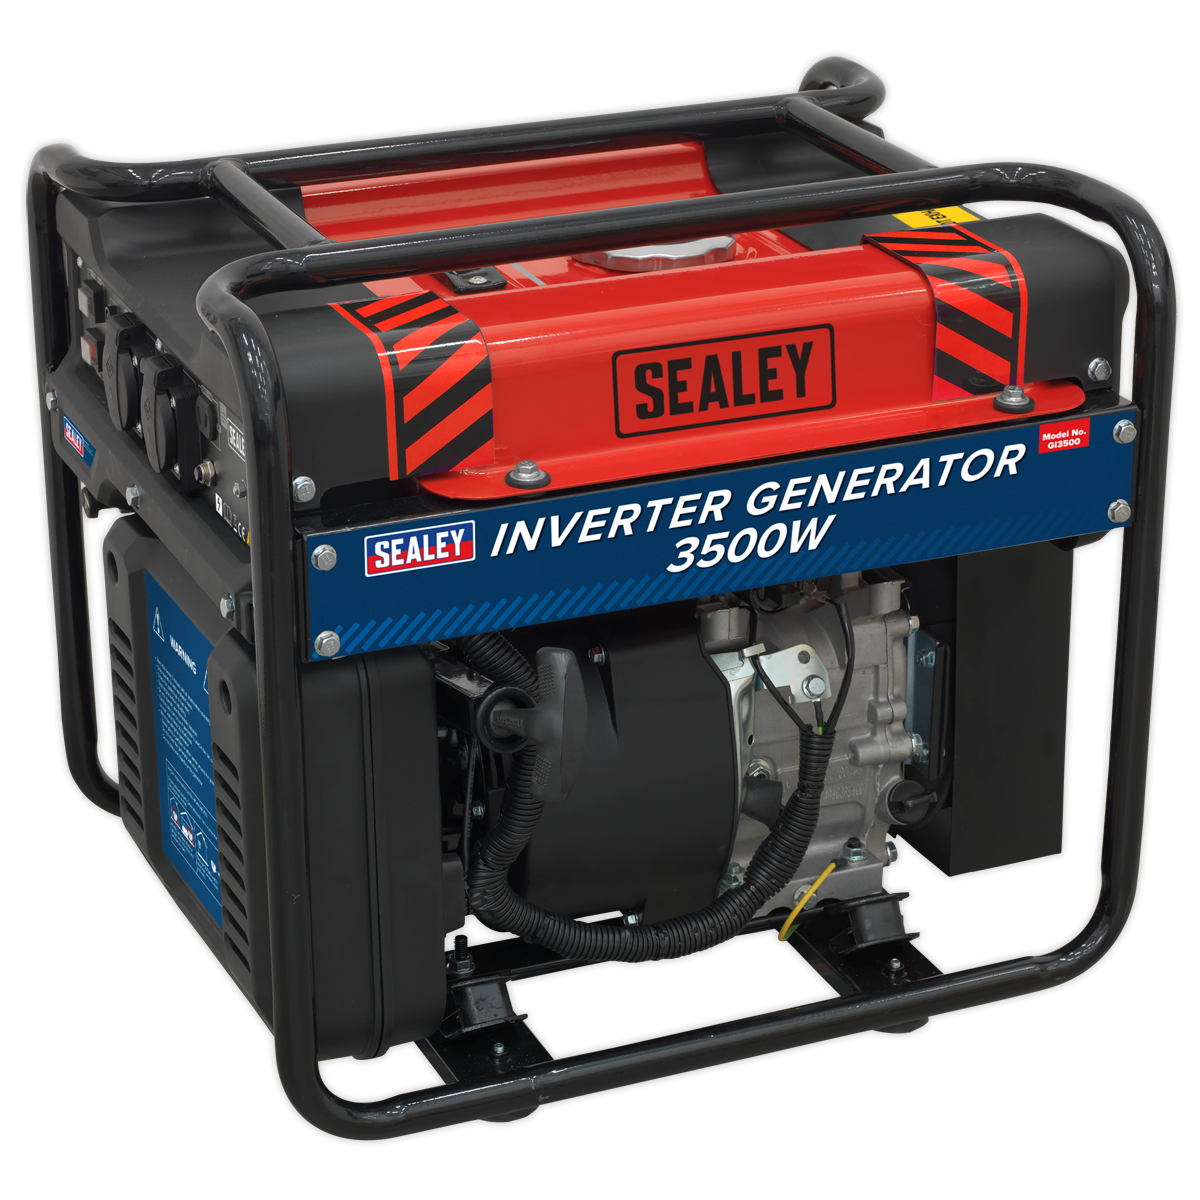 SEALEY Inverter Generator 3500W 230V 4-Stroke Engine